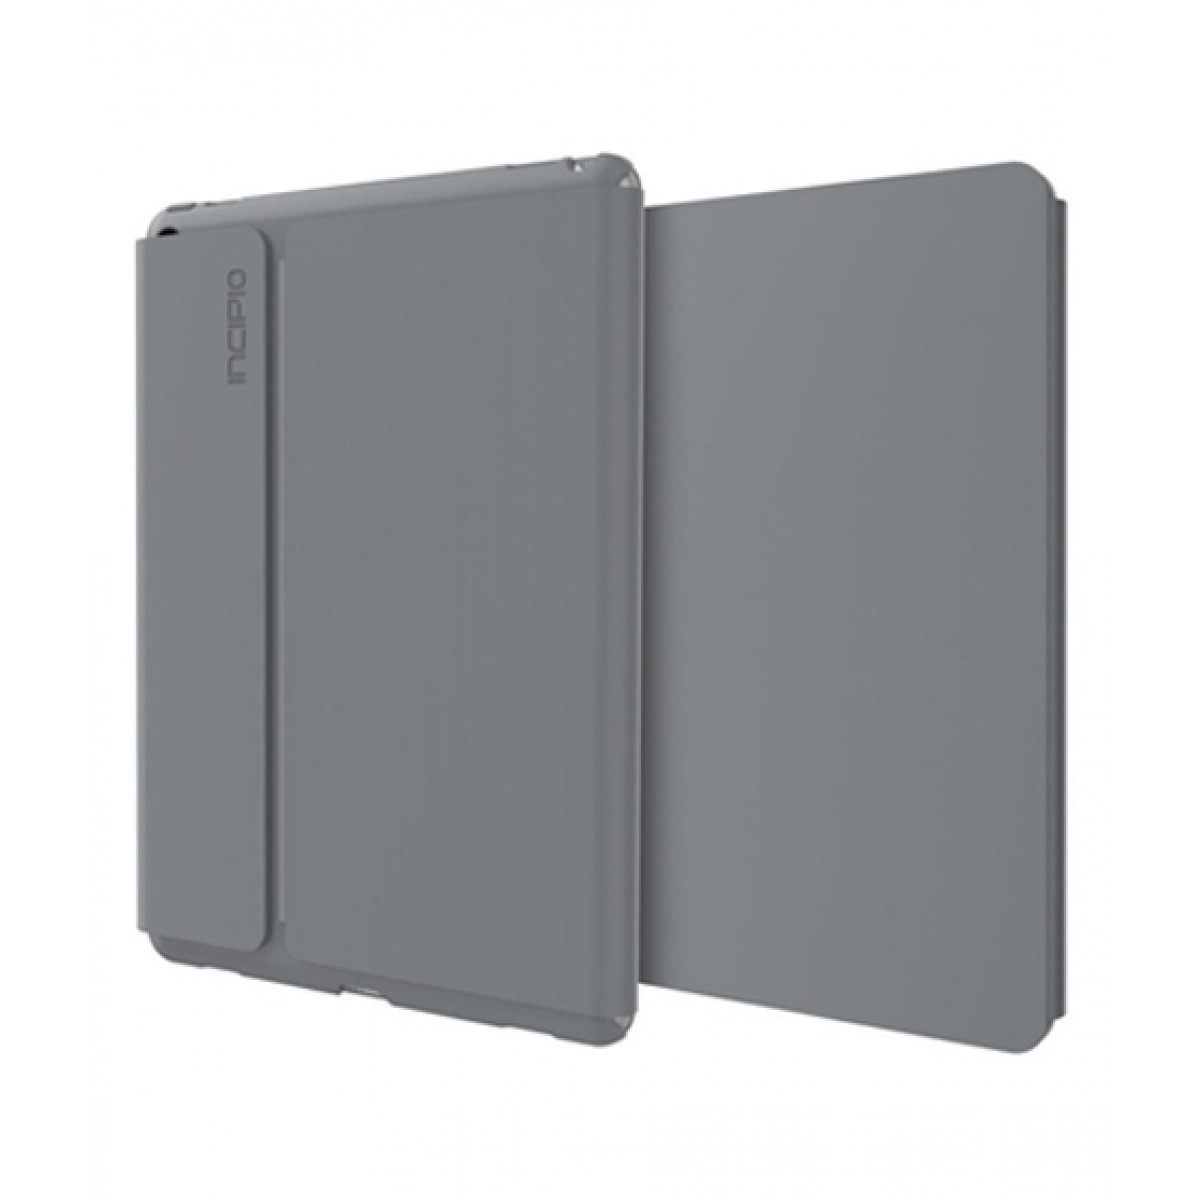 info for b2250 93bfb Incipio Faraday Folio Gray Case For iPad Pro 9.7